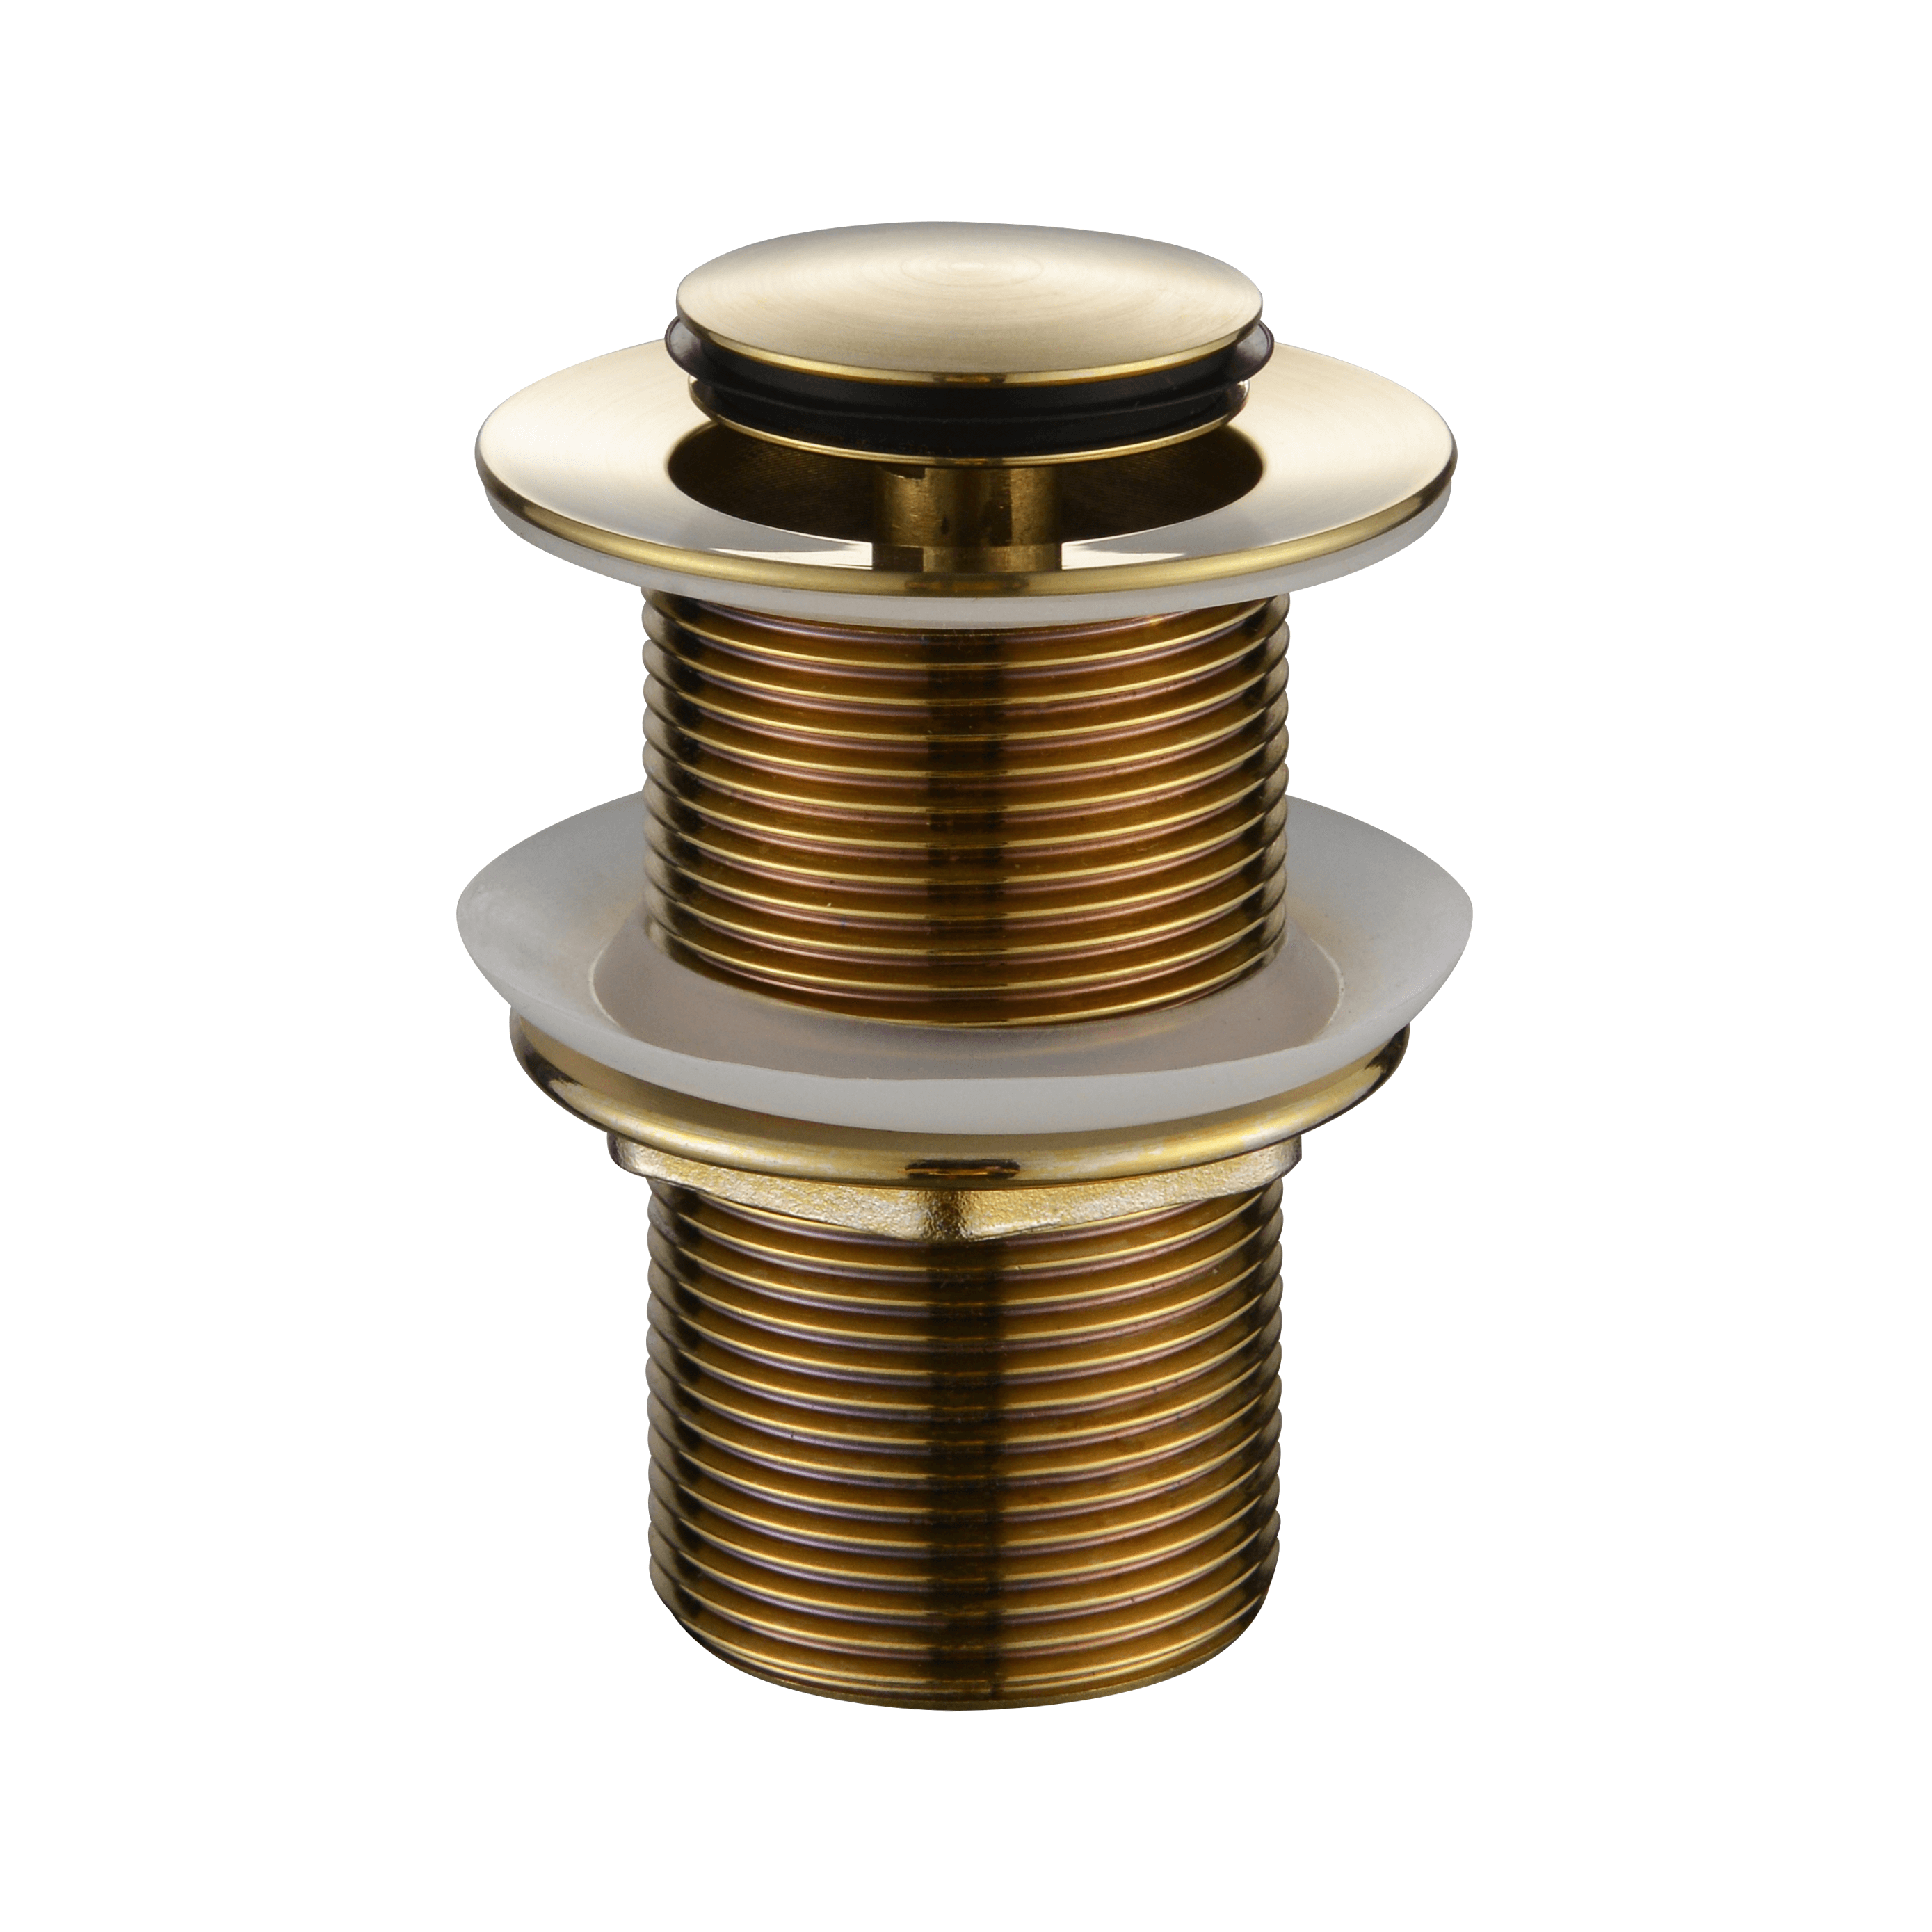 Pop-up Waste 32mm Non Overflow - PVD Brushed Bronze